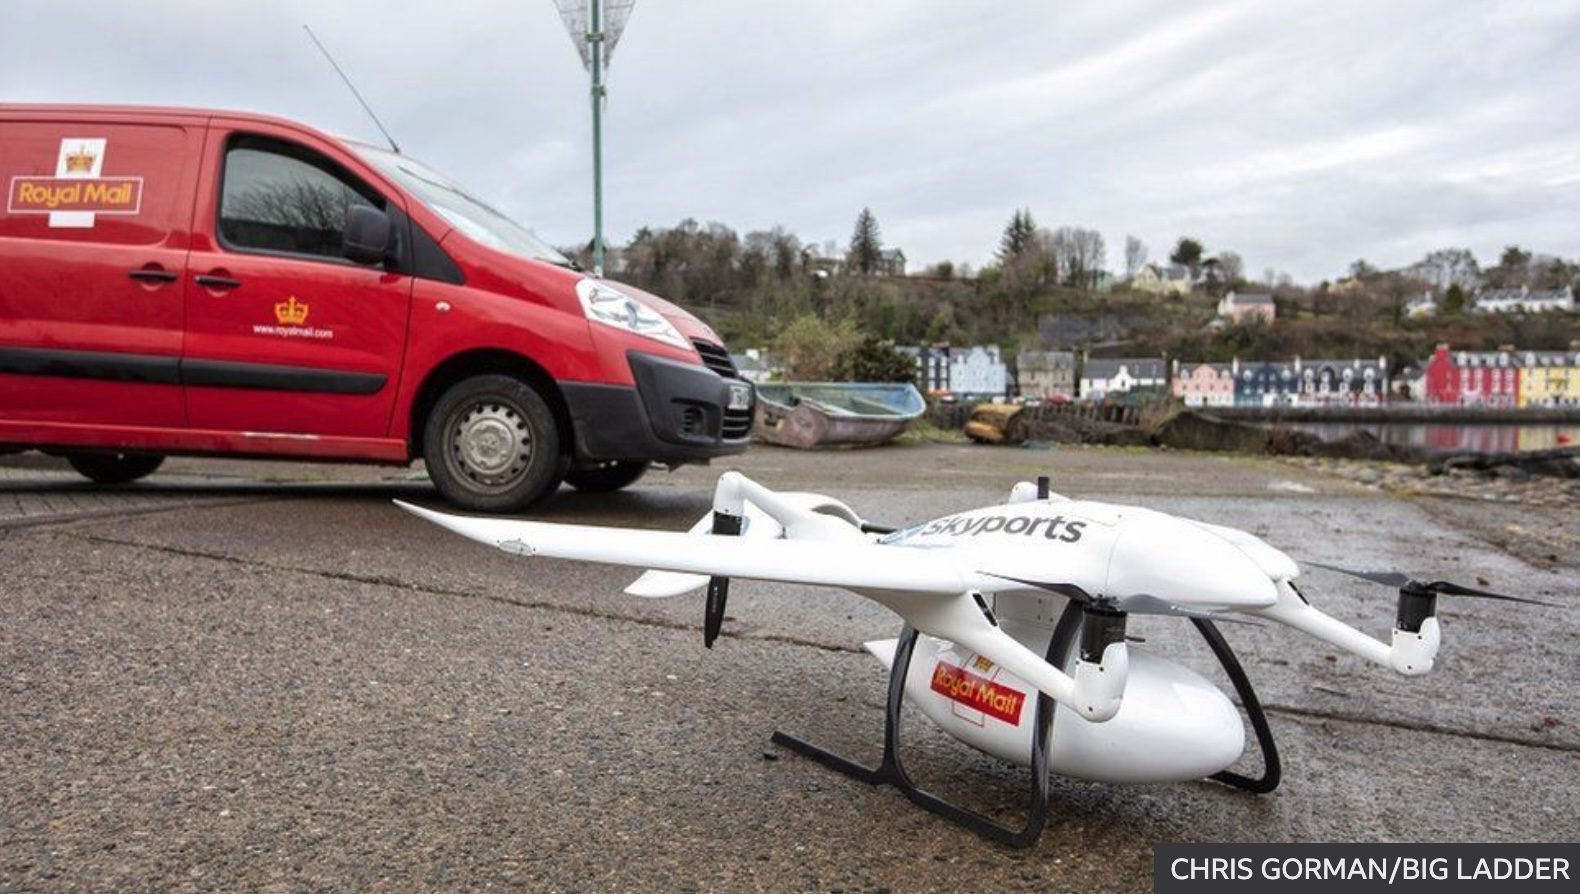 Royal Mail delivers first package by drone to Scottish Isle of Mull